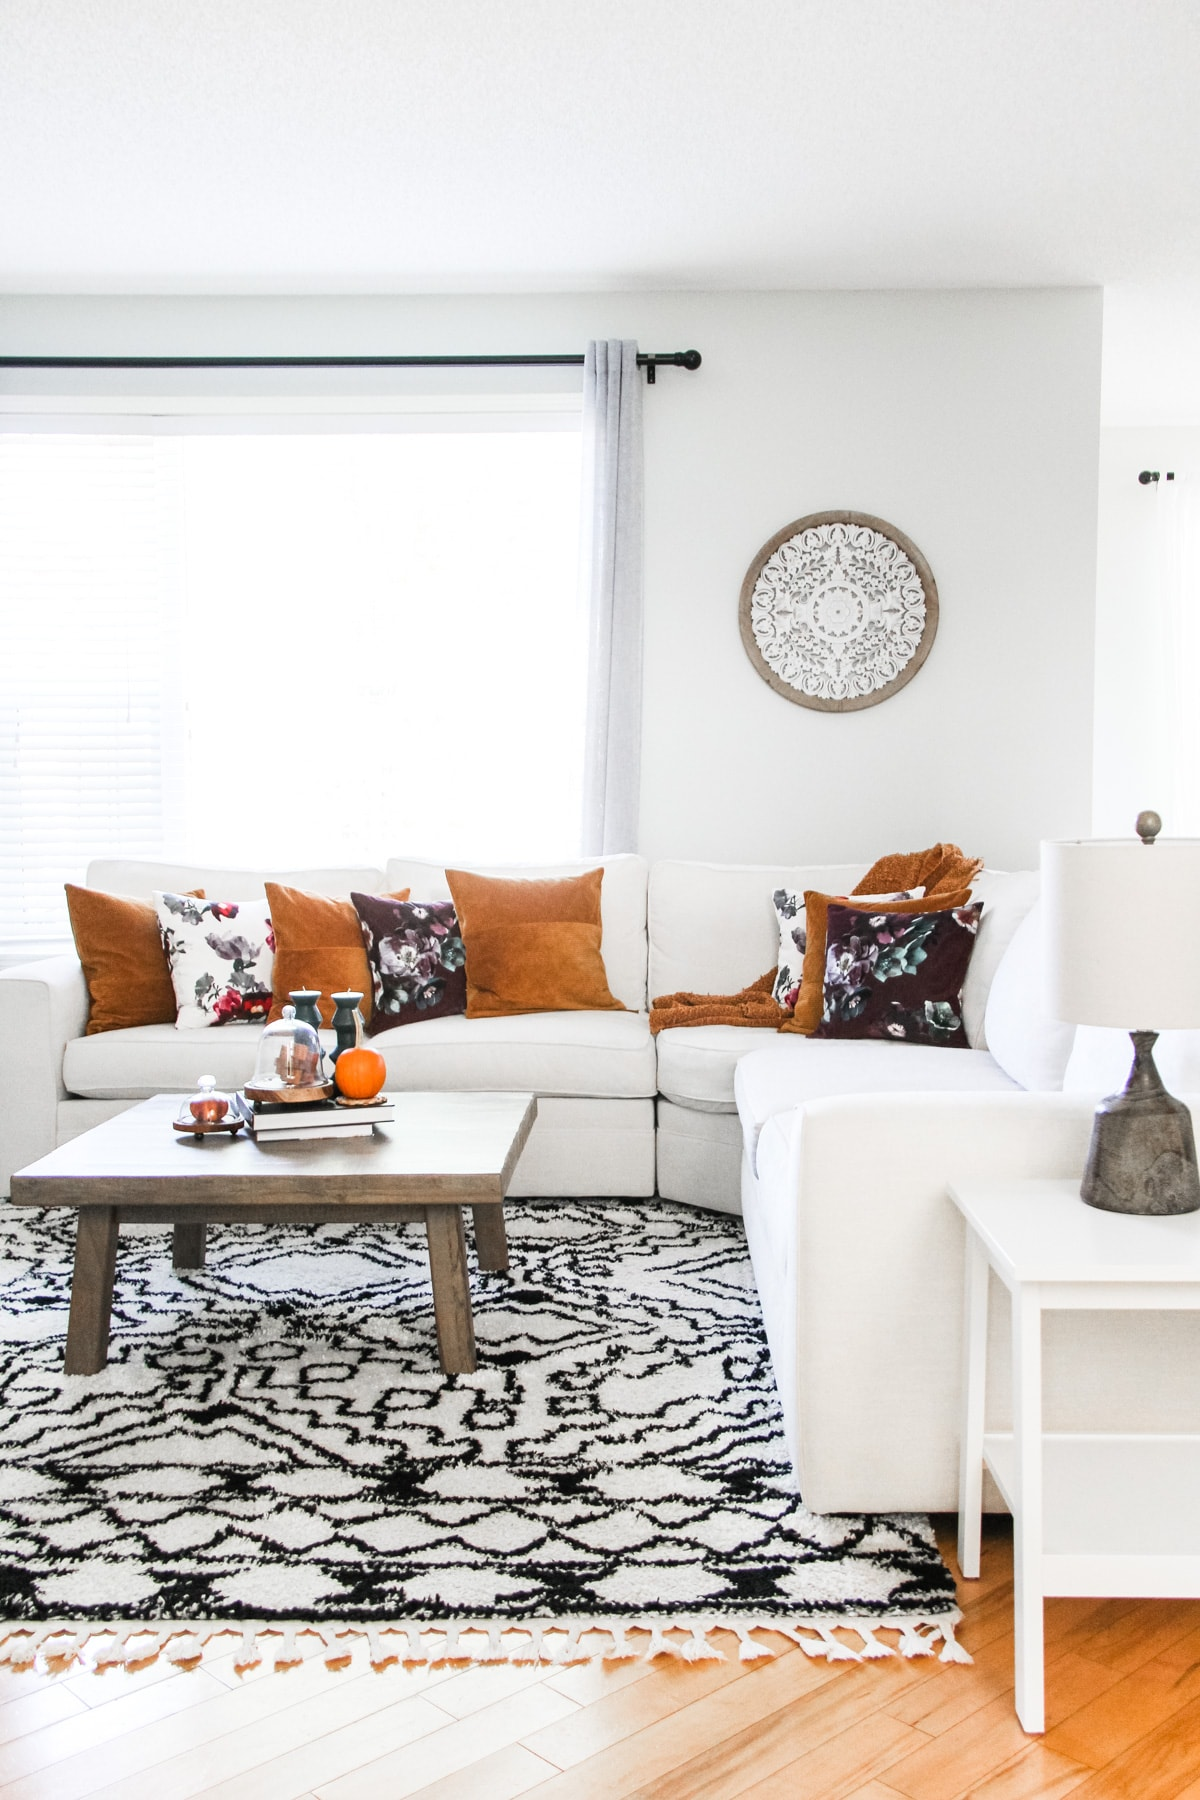 Fall Home Tour: a view of a cream coloured sectional couch on a black and white rug. the couch is filled with rust and floral pillows